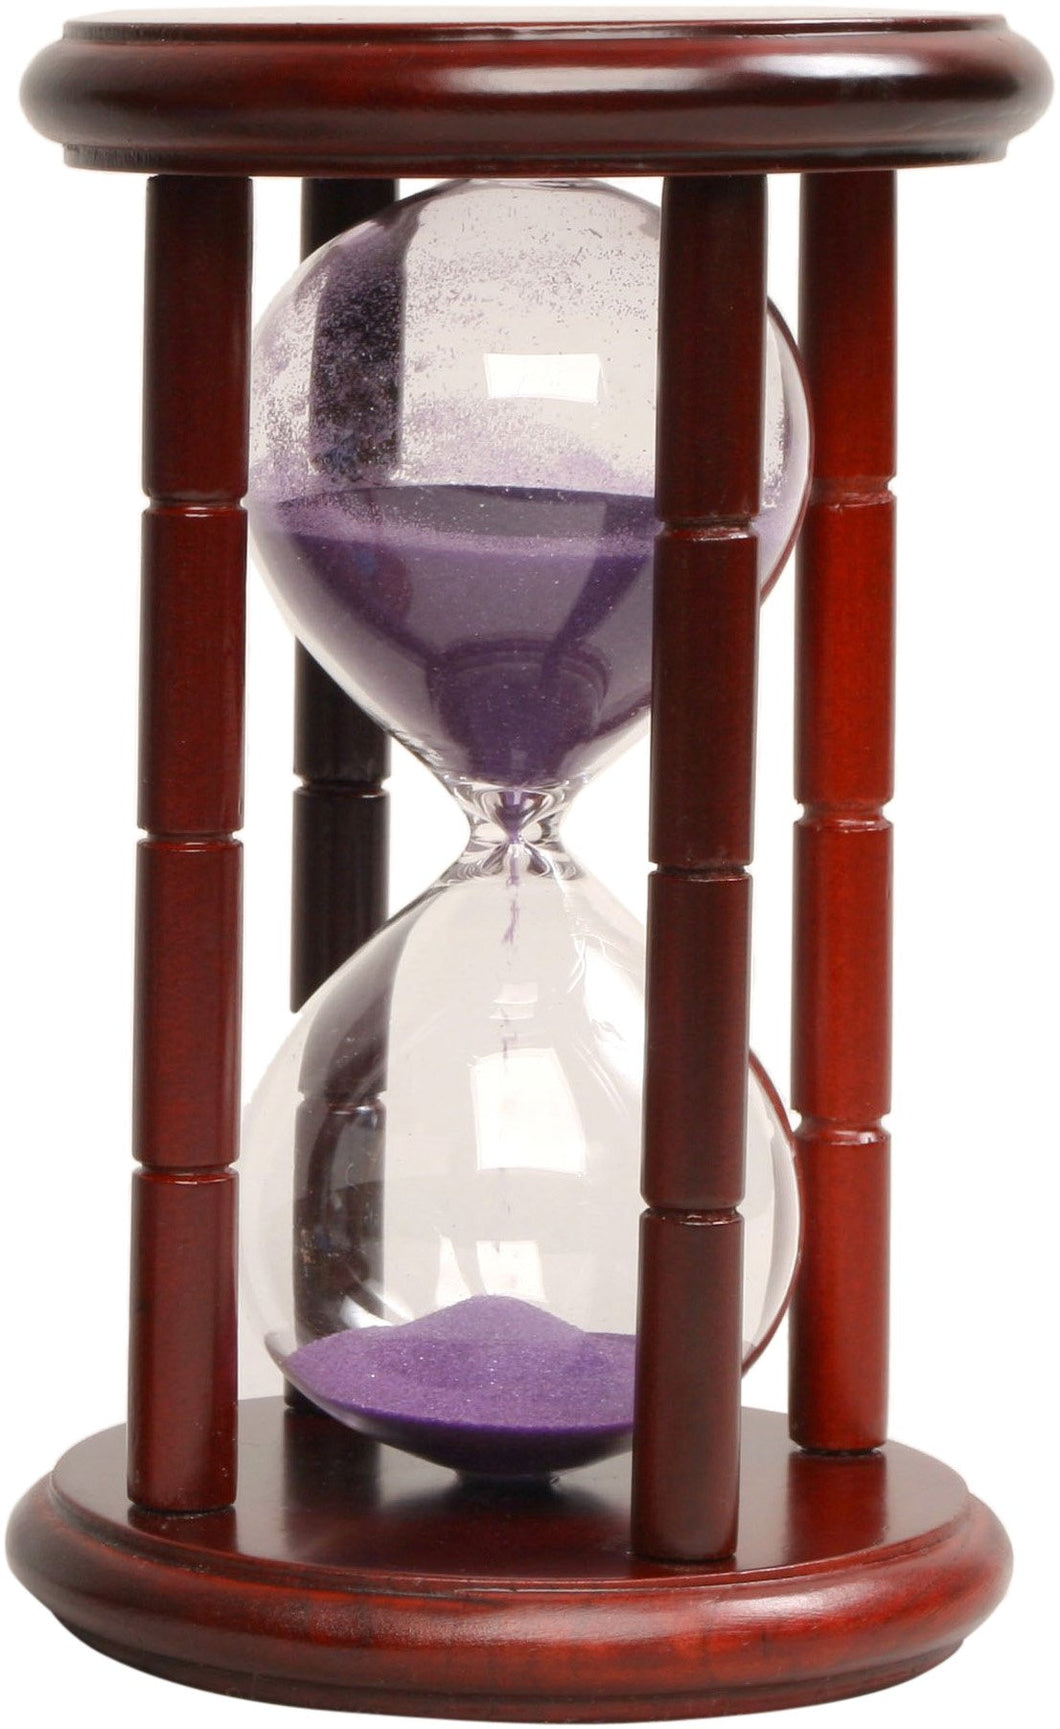 15 Minute Sand Timer Purple Sand, Cherry Stand 6.5-Inch